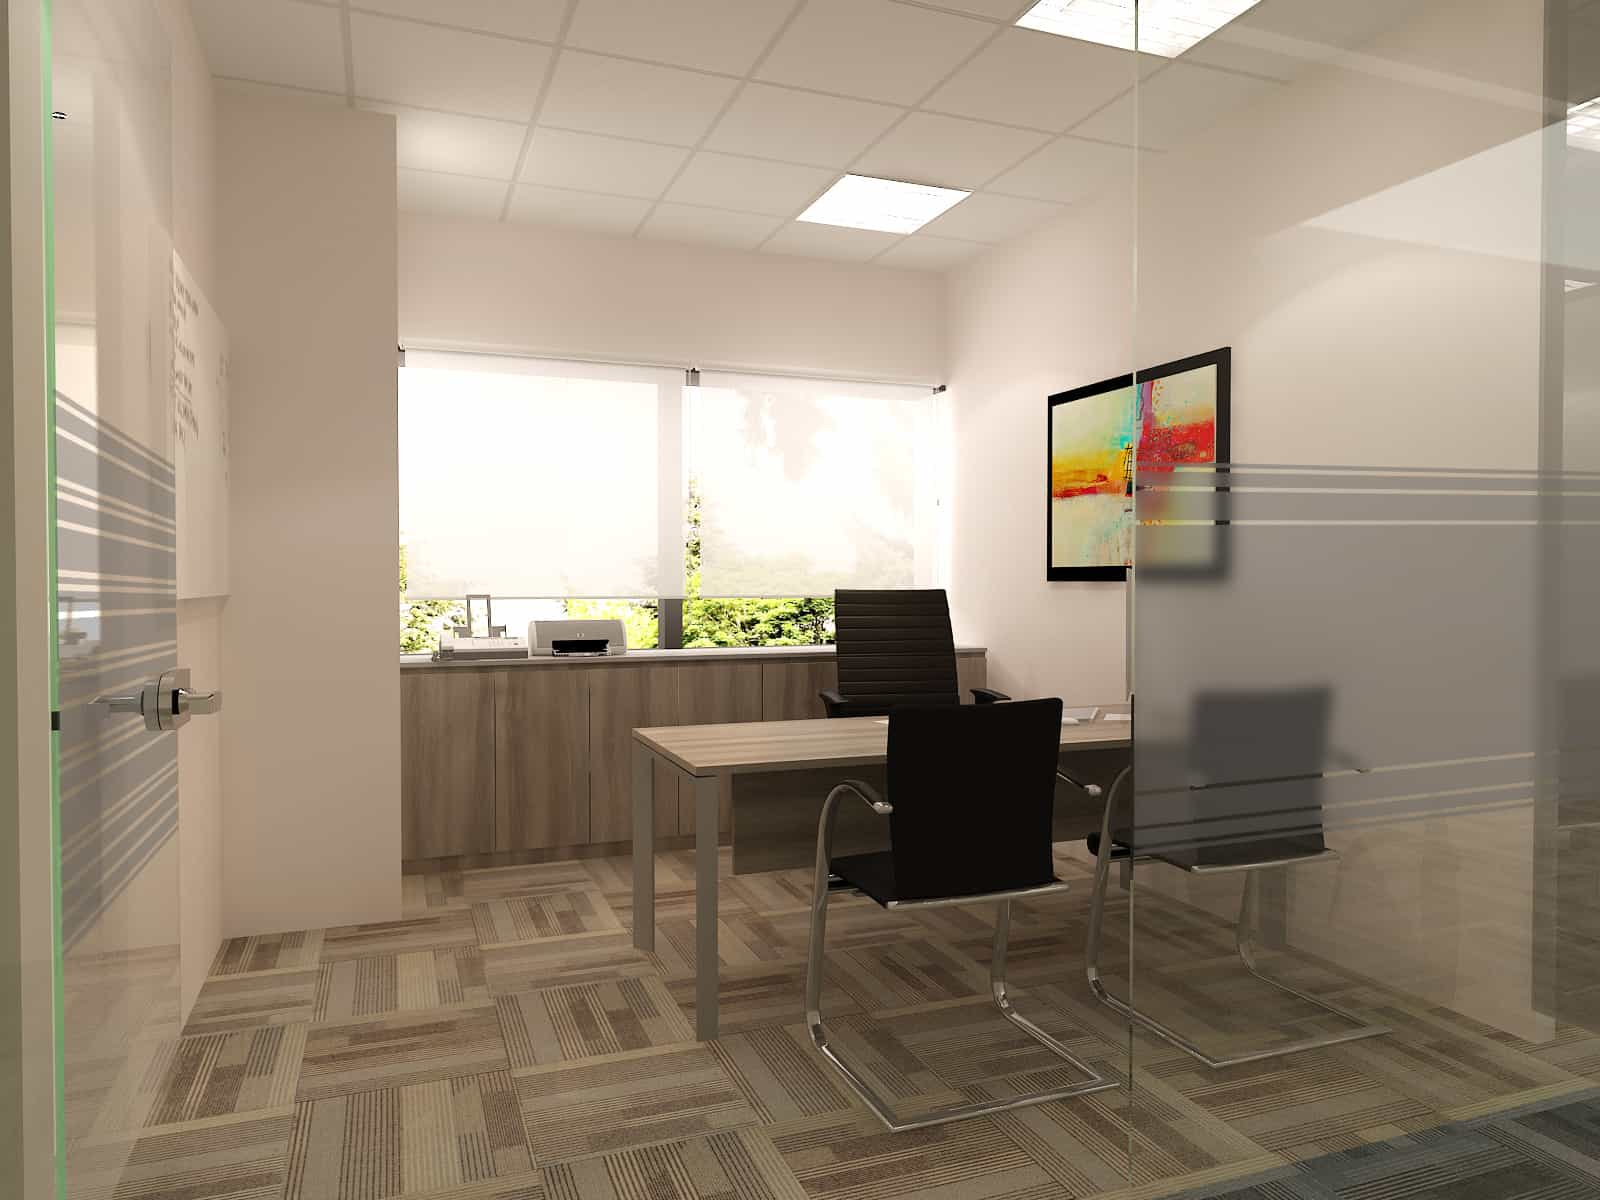 Turnkey office interior fit out | D'Alliance